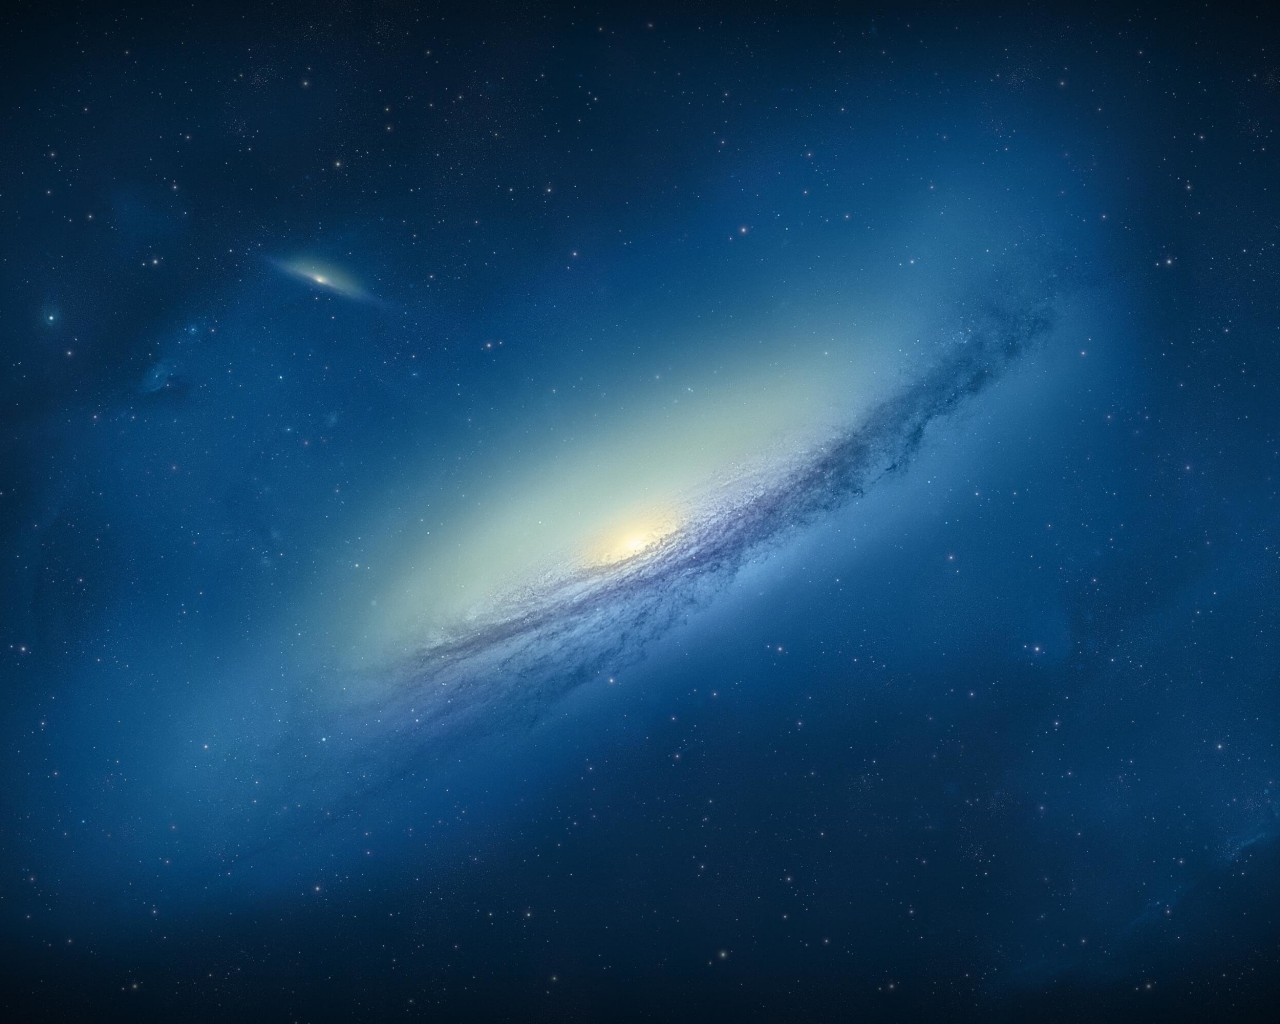 Galaxy NGC 3190 Wallpaper for Desktop 1280x1024